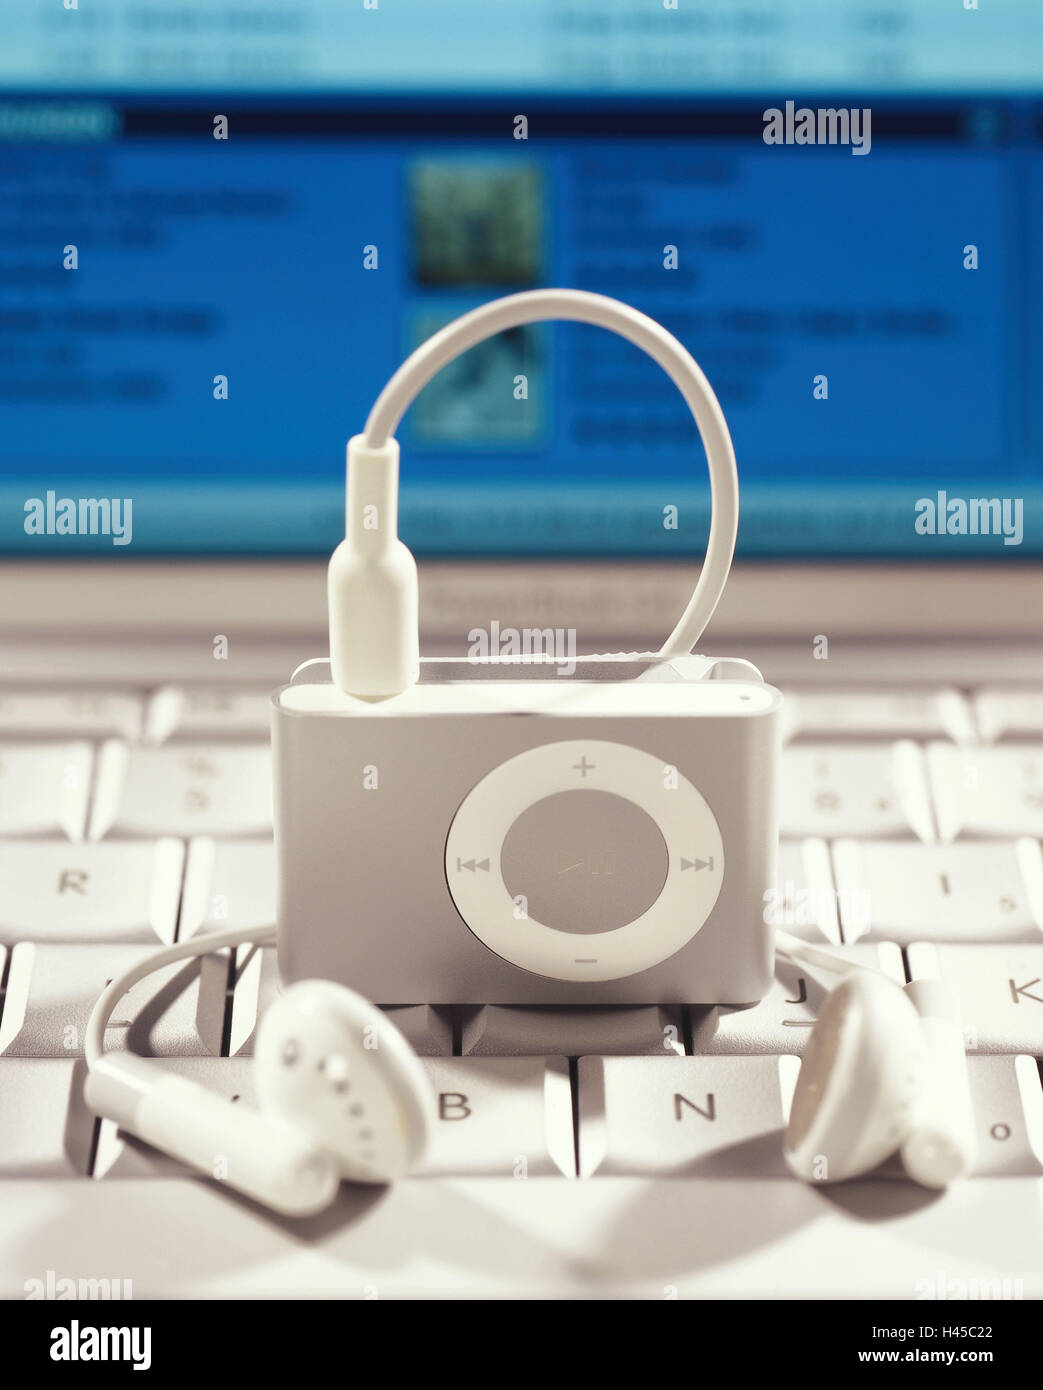 Laptop, keyboard, iPod shuffle, silver, ear-listeners, no property release, computers, Notebook, screen, computer - Stock Image